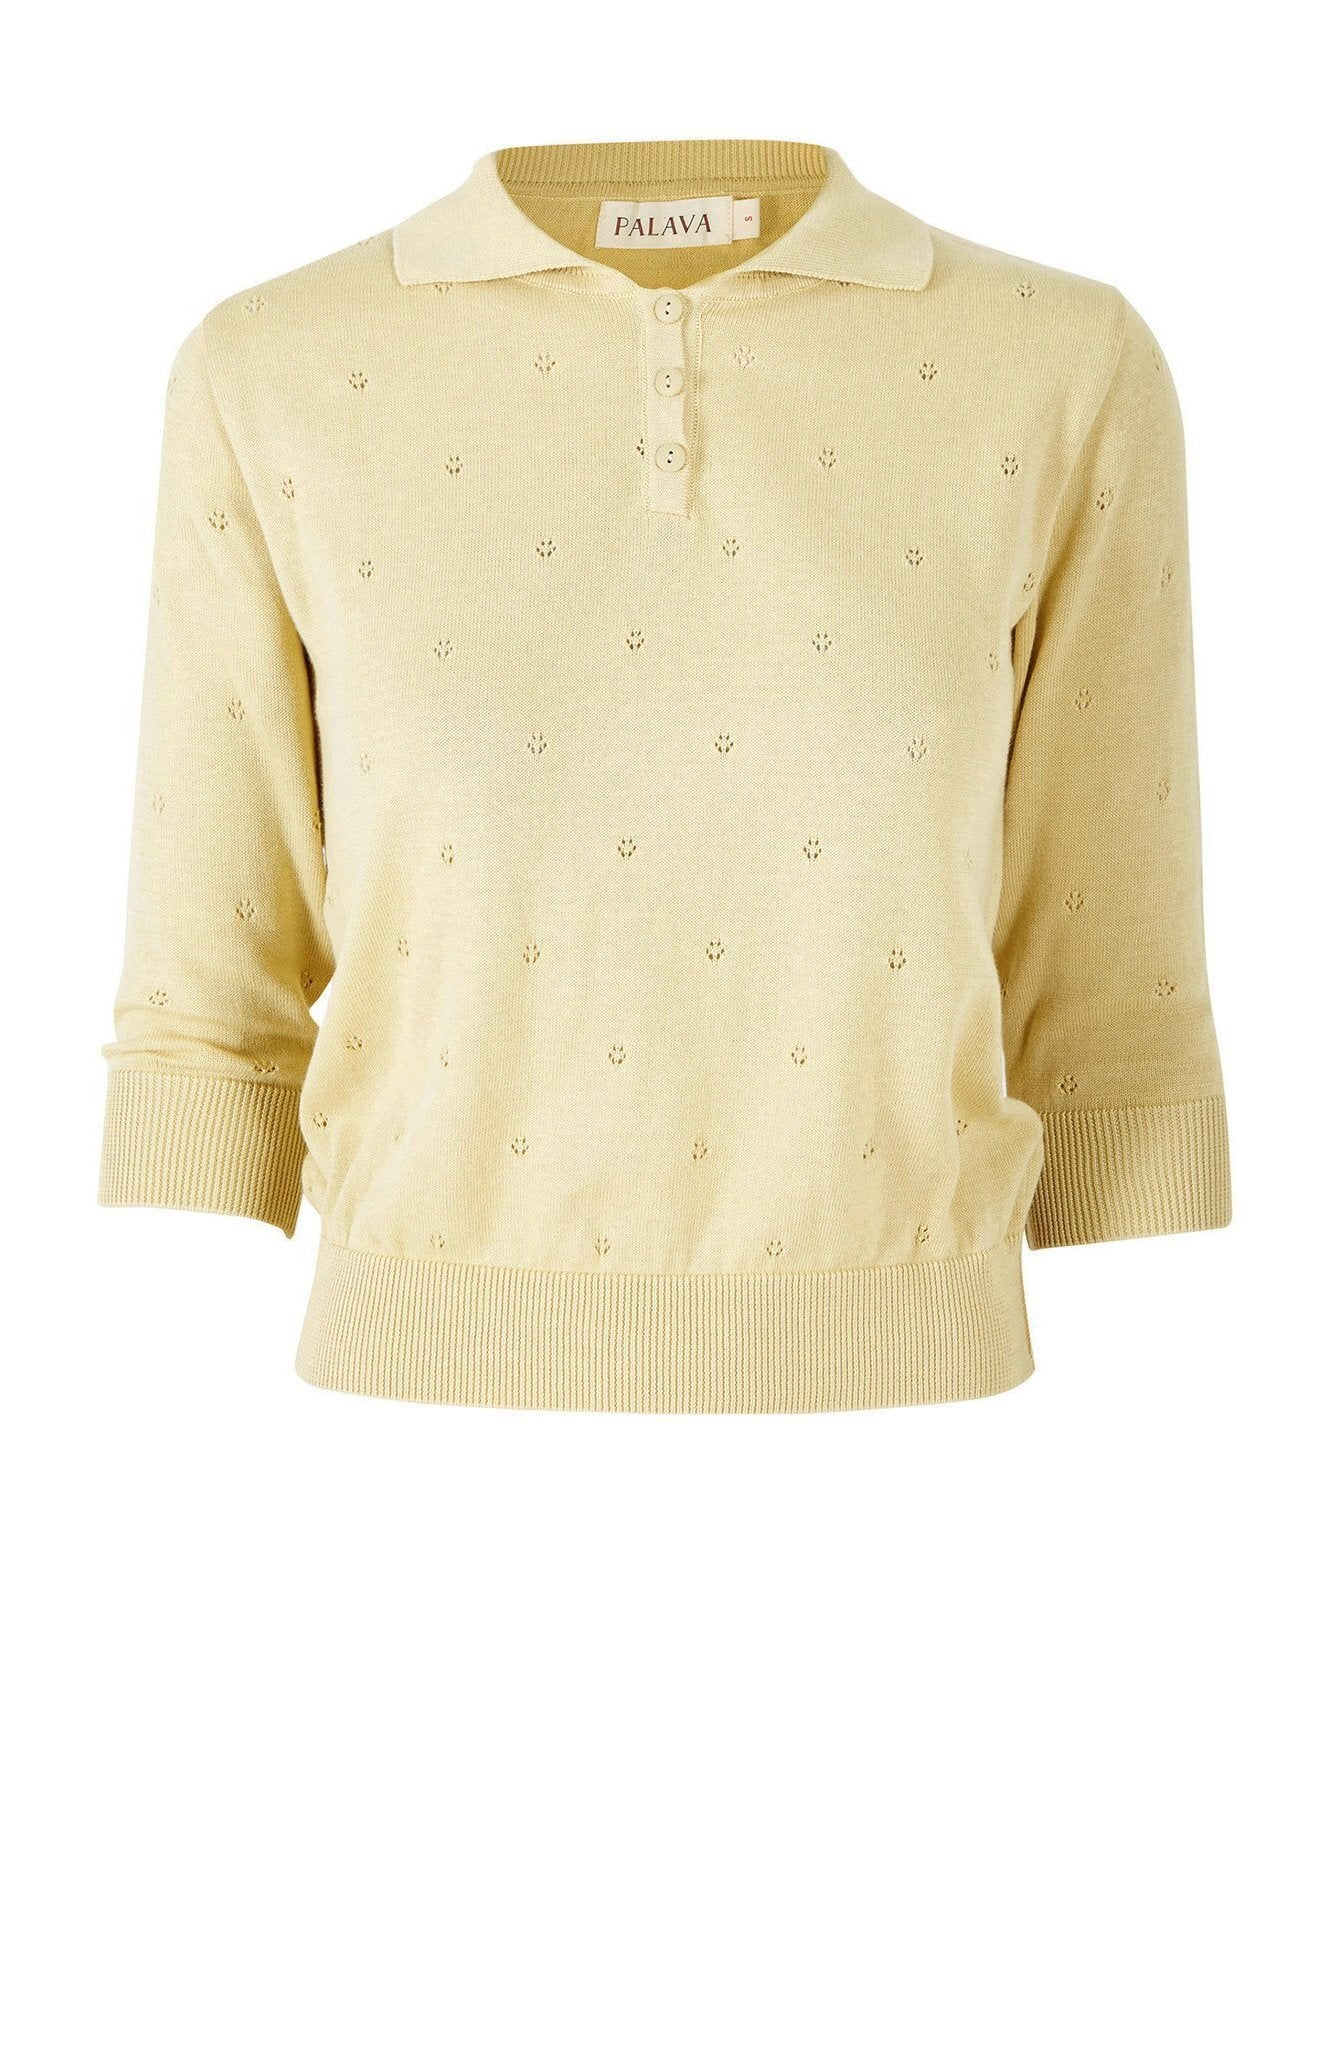 Lemon Organic Cotton Spring Sweater by Palava